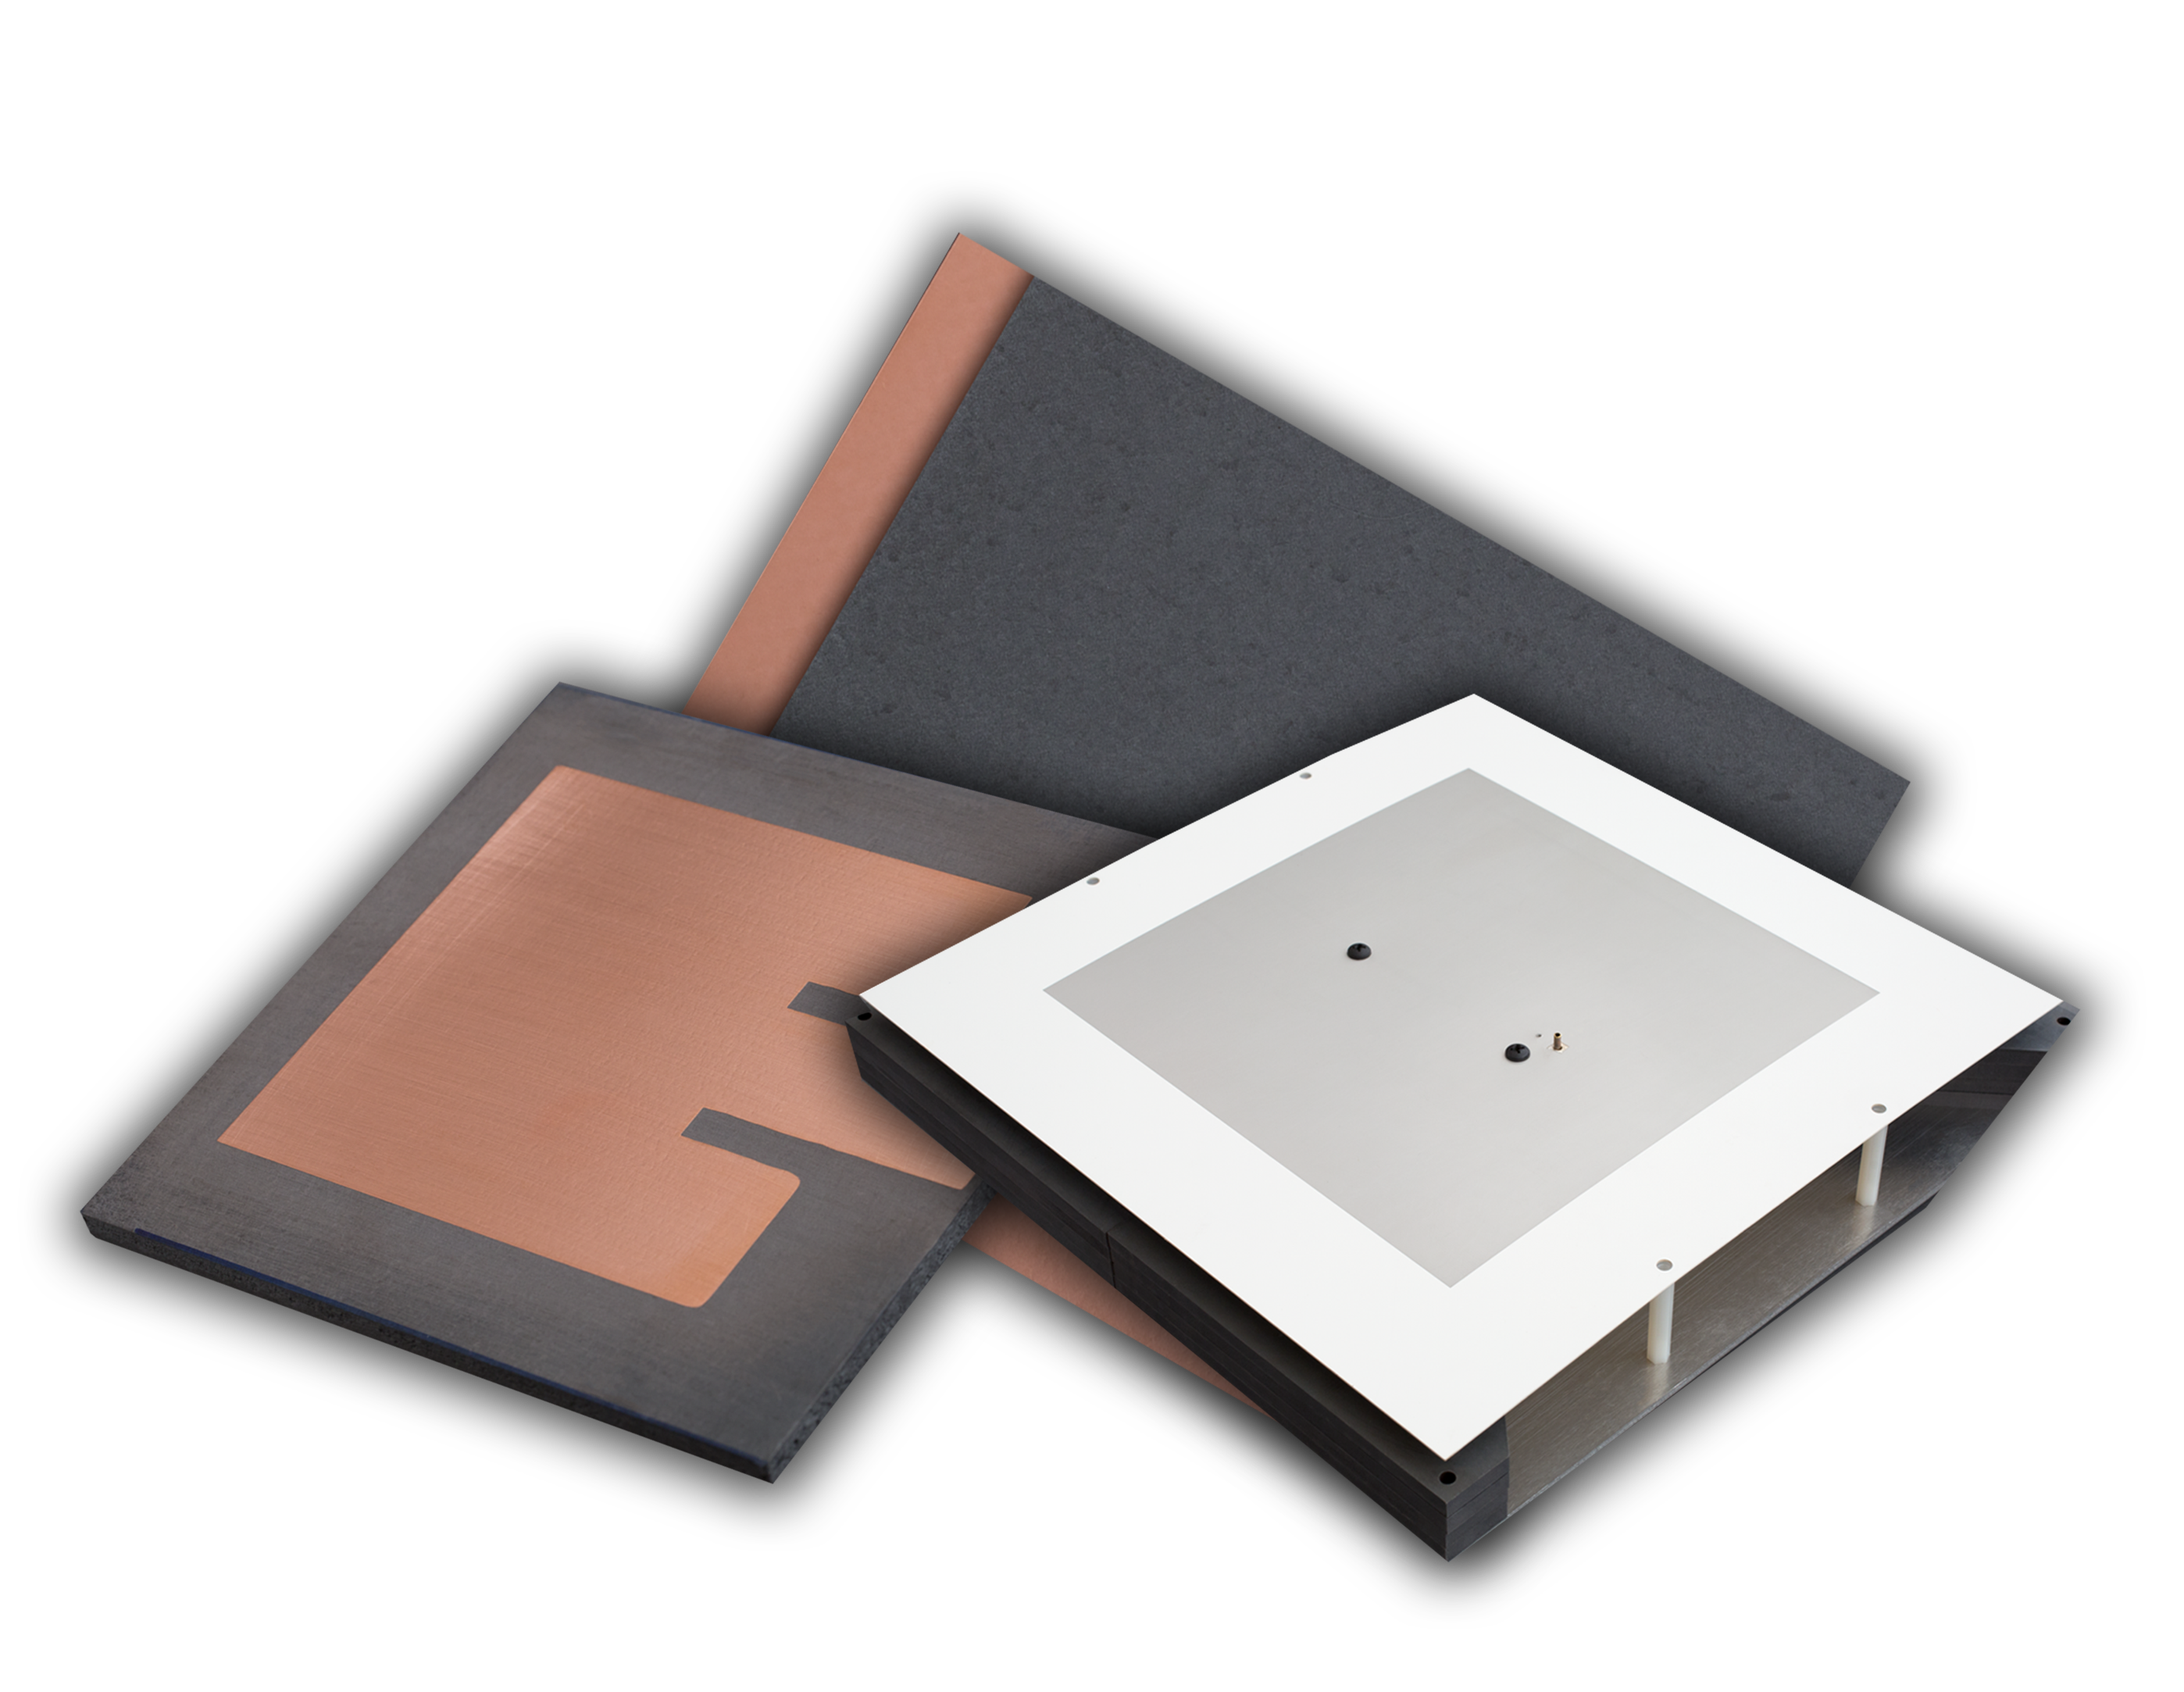 High-Impedance Laminates Feature High Permeability and Permittivity